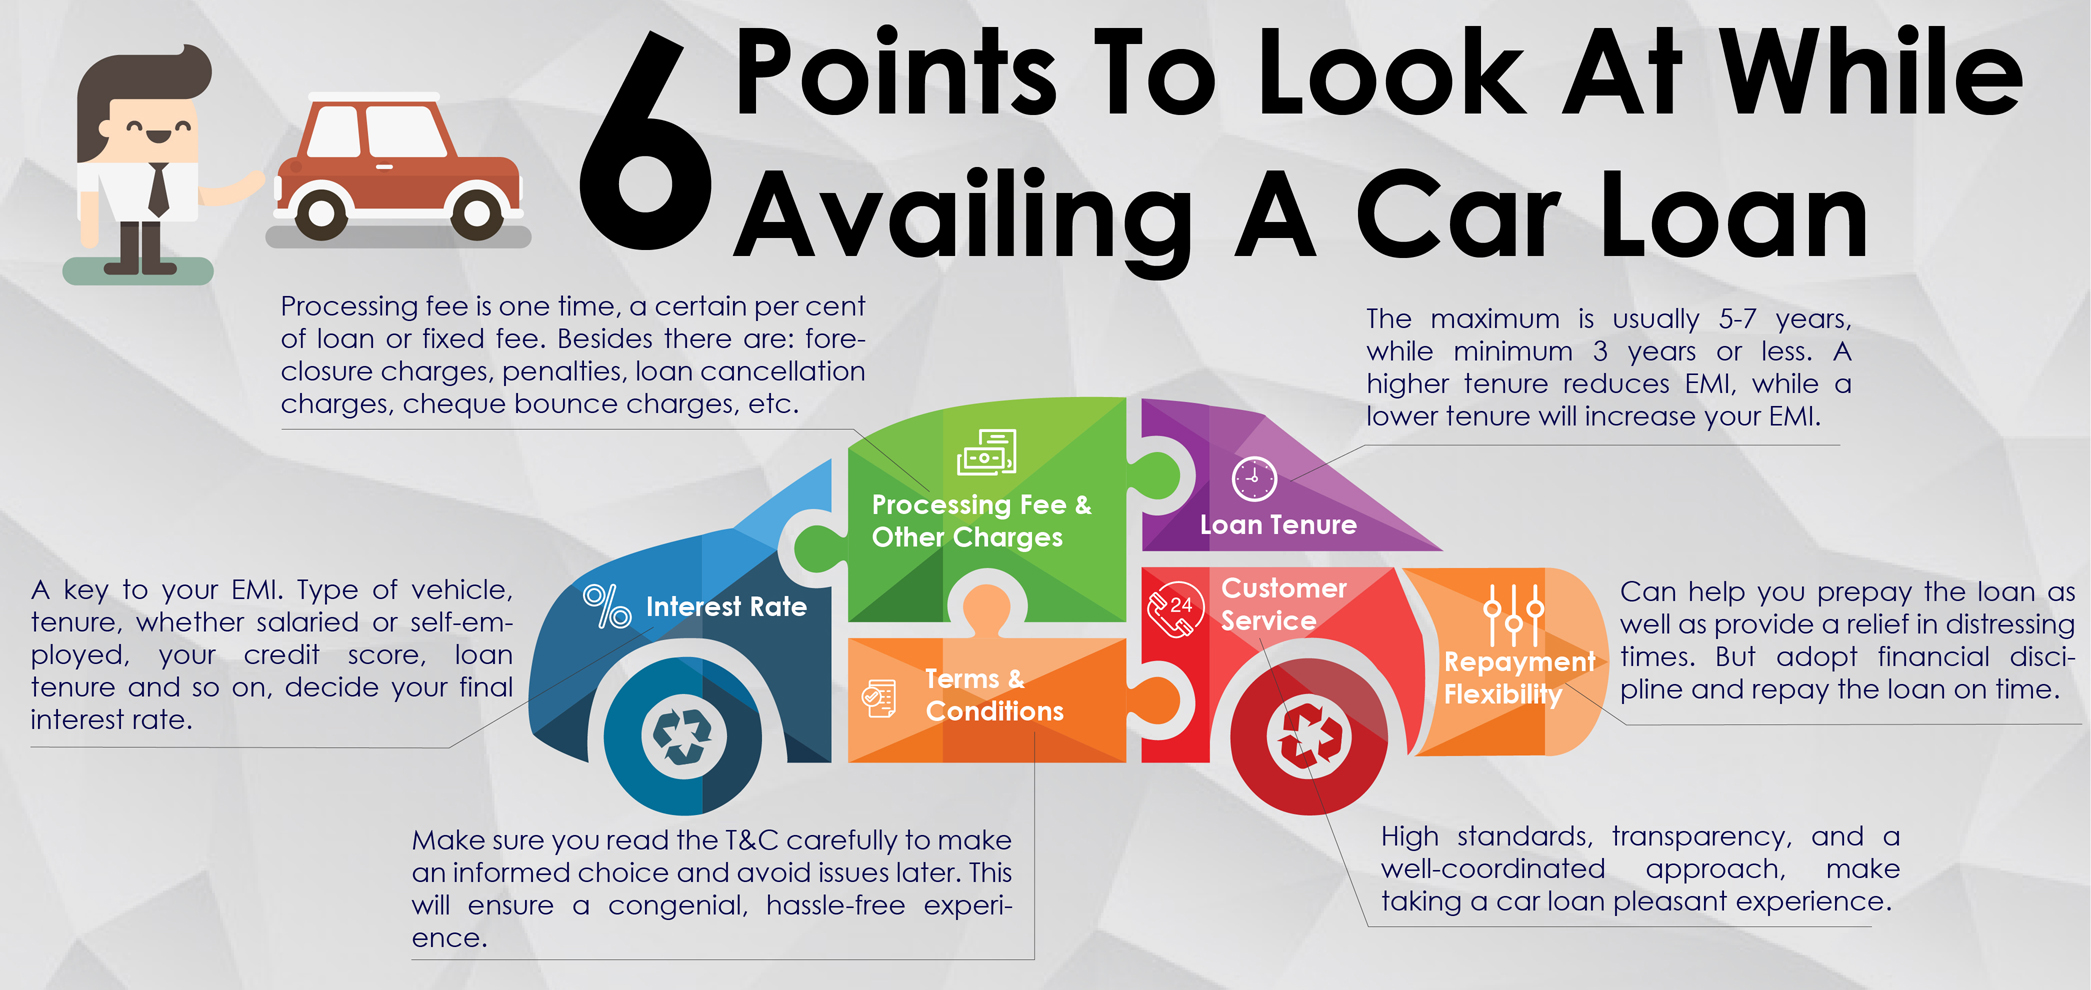 6 Points To Look At While Buying A Car For Your Family This Festive Season Axis Bank